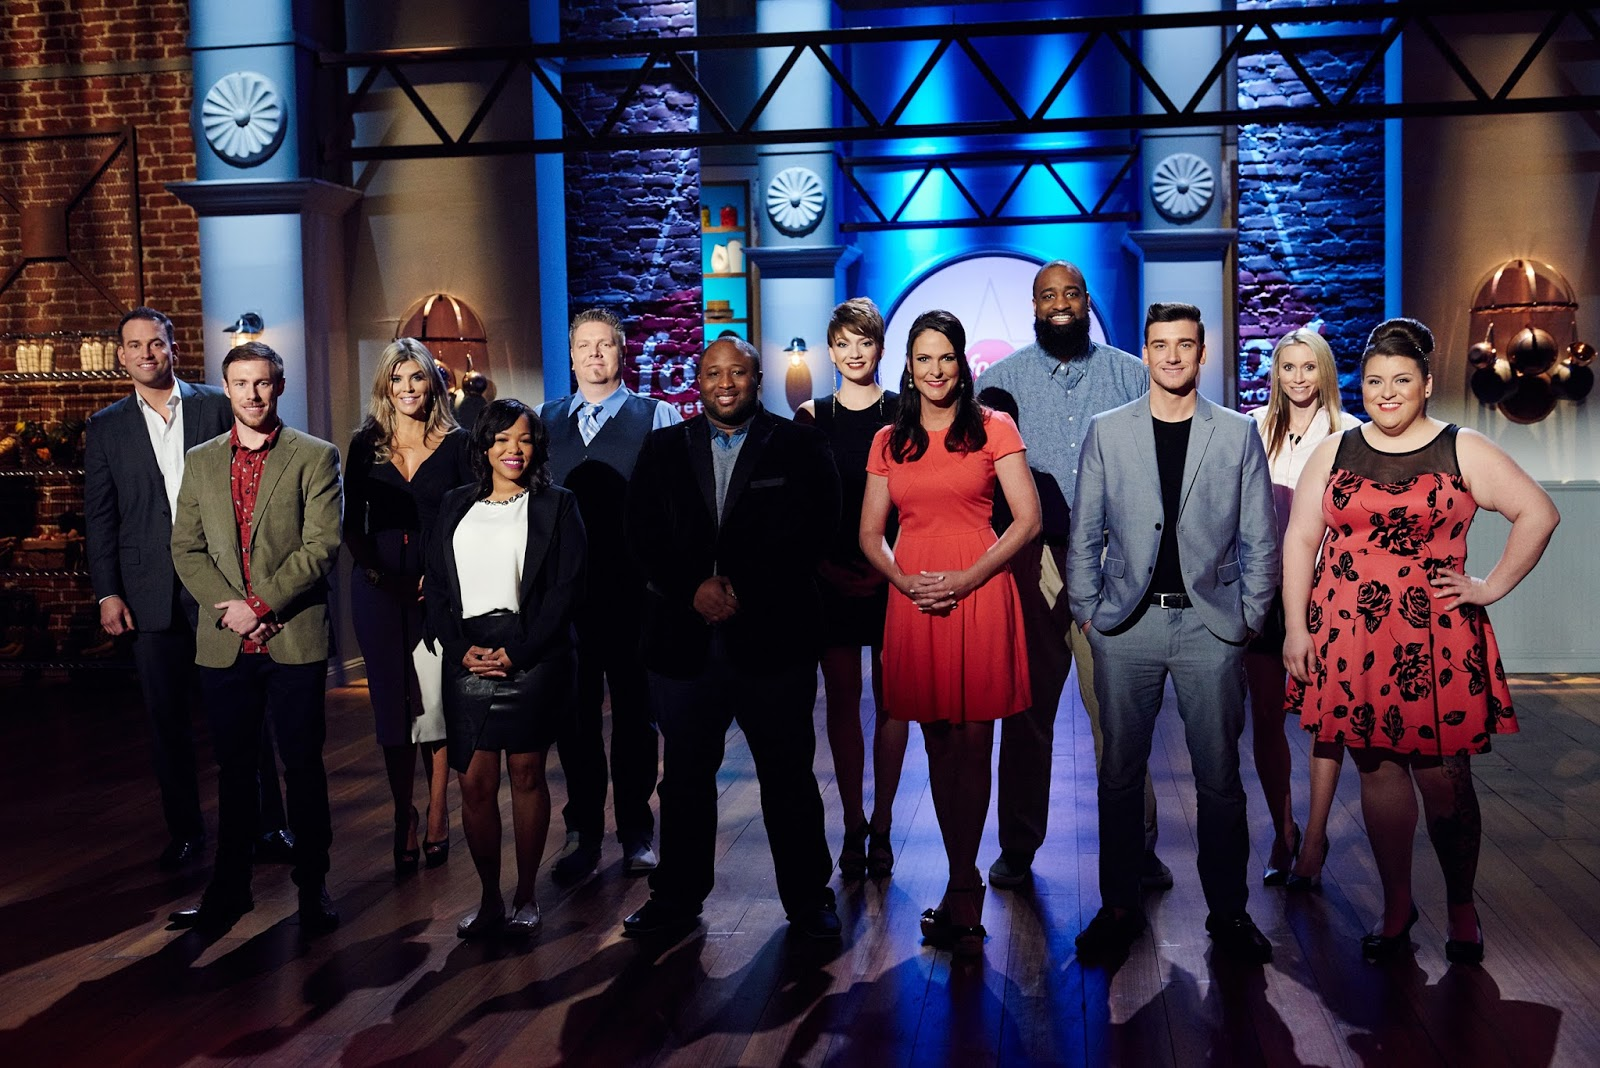 Food Network Star Season 12 Contestants   Where Have You Seen Them?